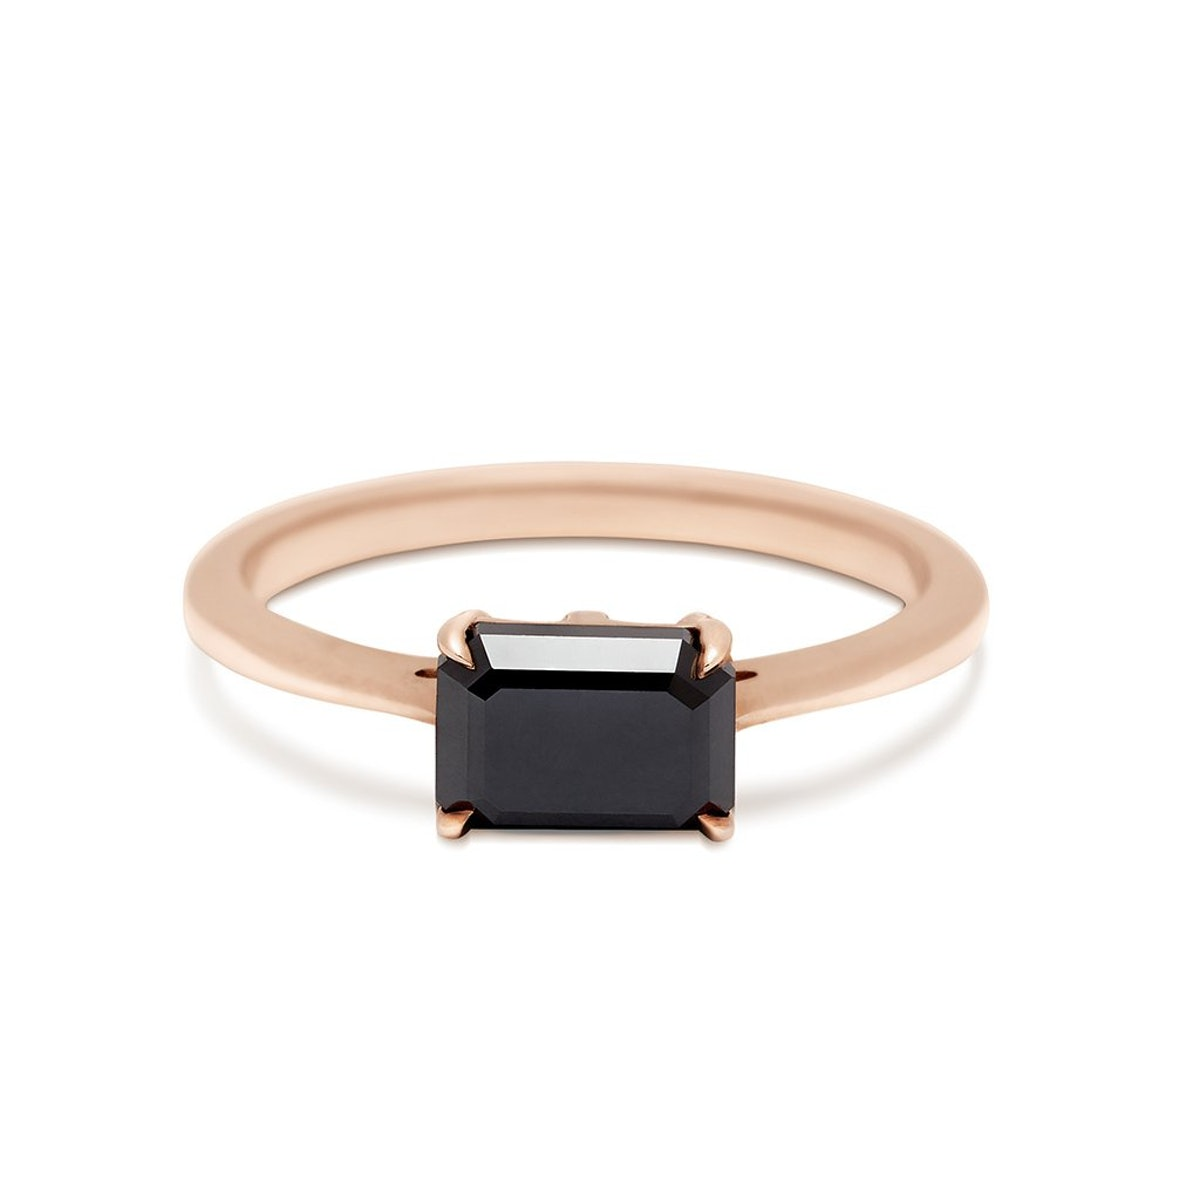 Bea East/West Solitaire Ring Rose Gold & Black Diamond (7x5MM)